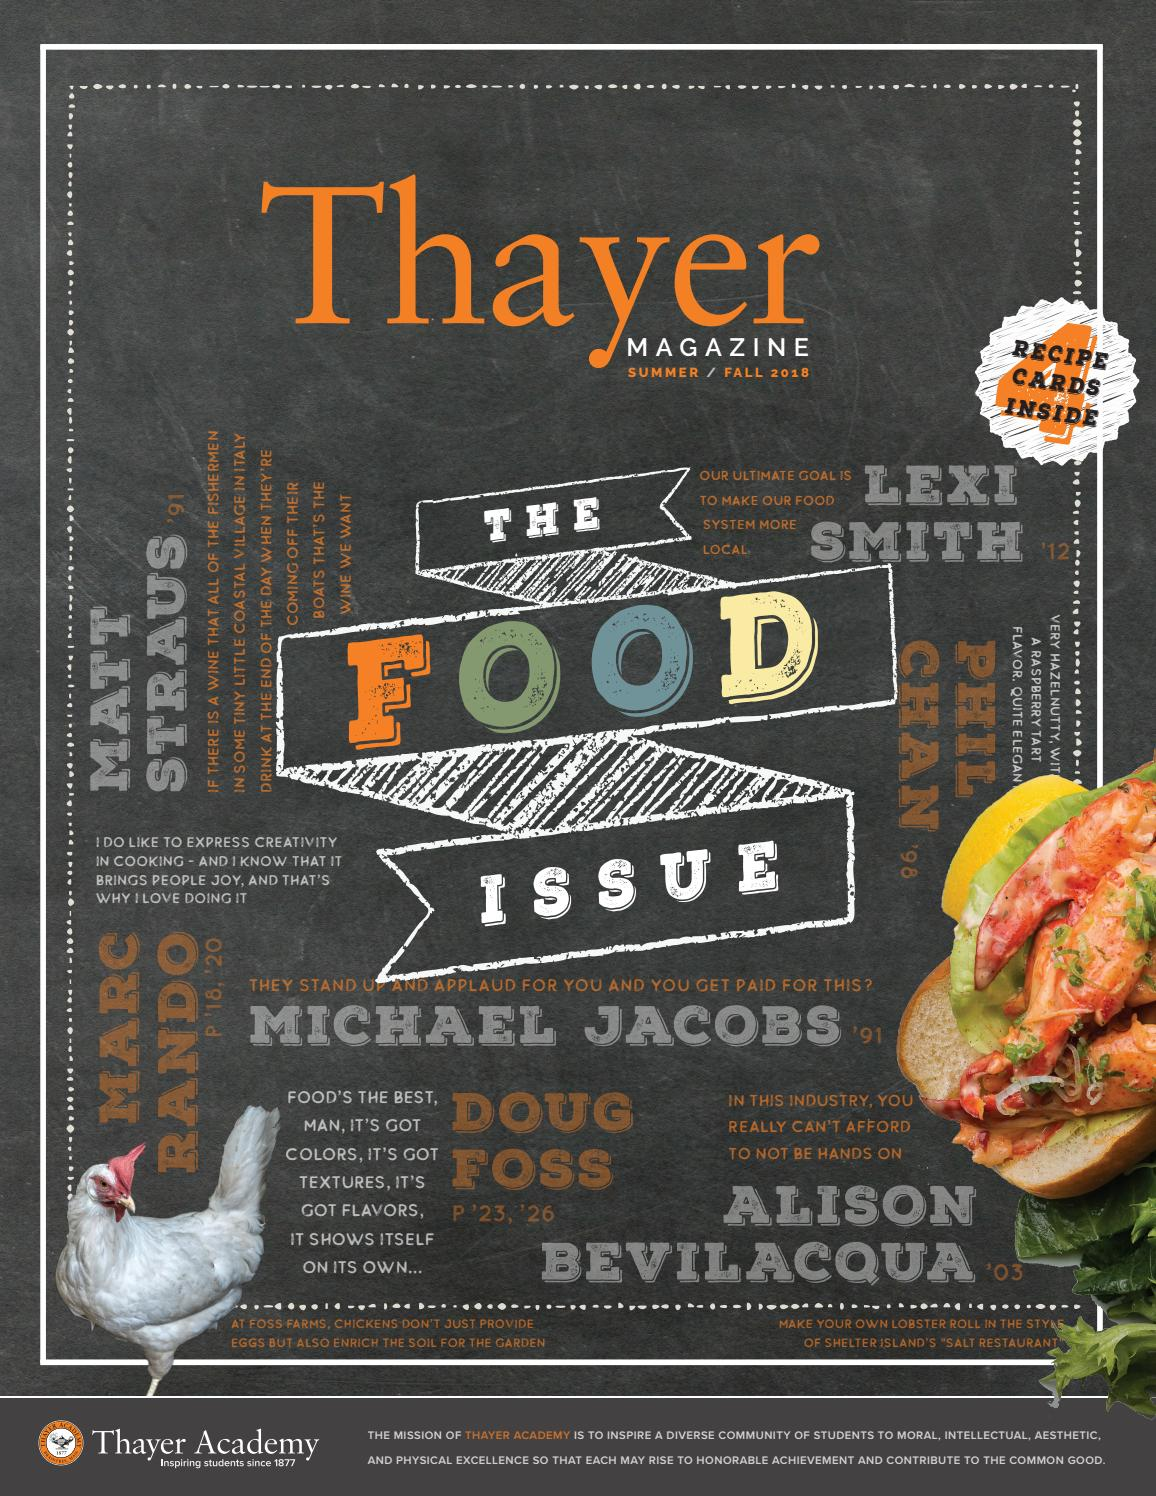 8de174d452 Thayer Magazine - Summer/Fall 2018 Issue - The Food Issue by Thayer Academy  - issuu